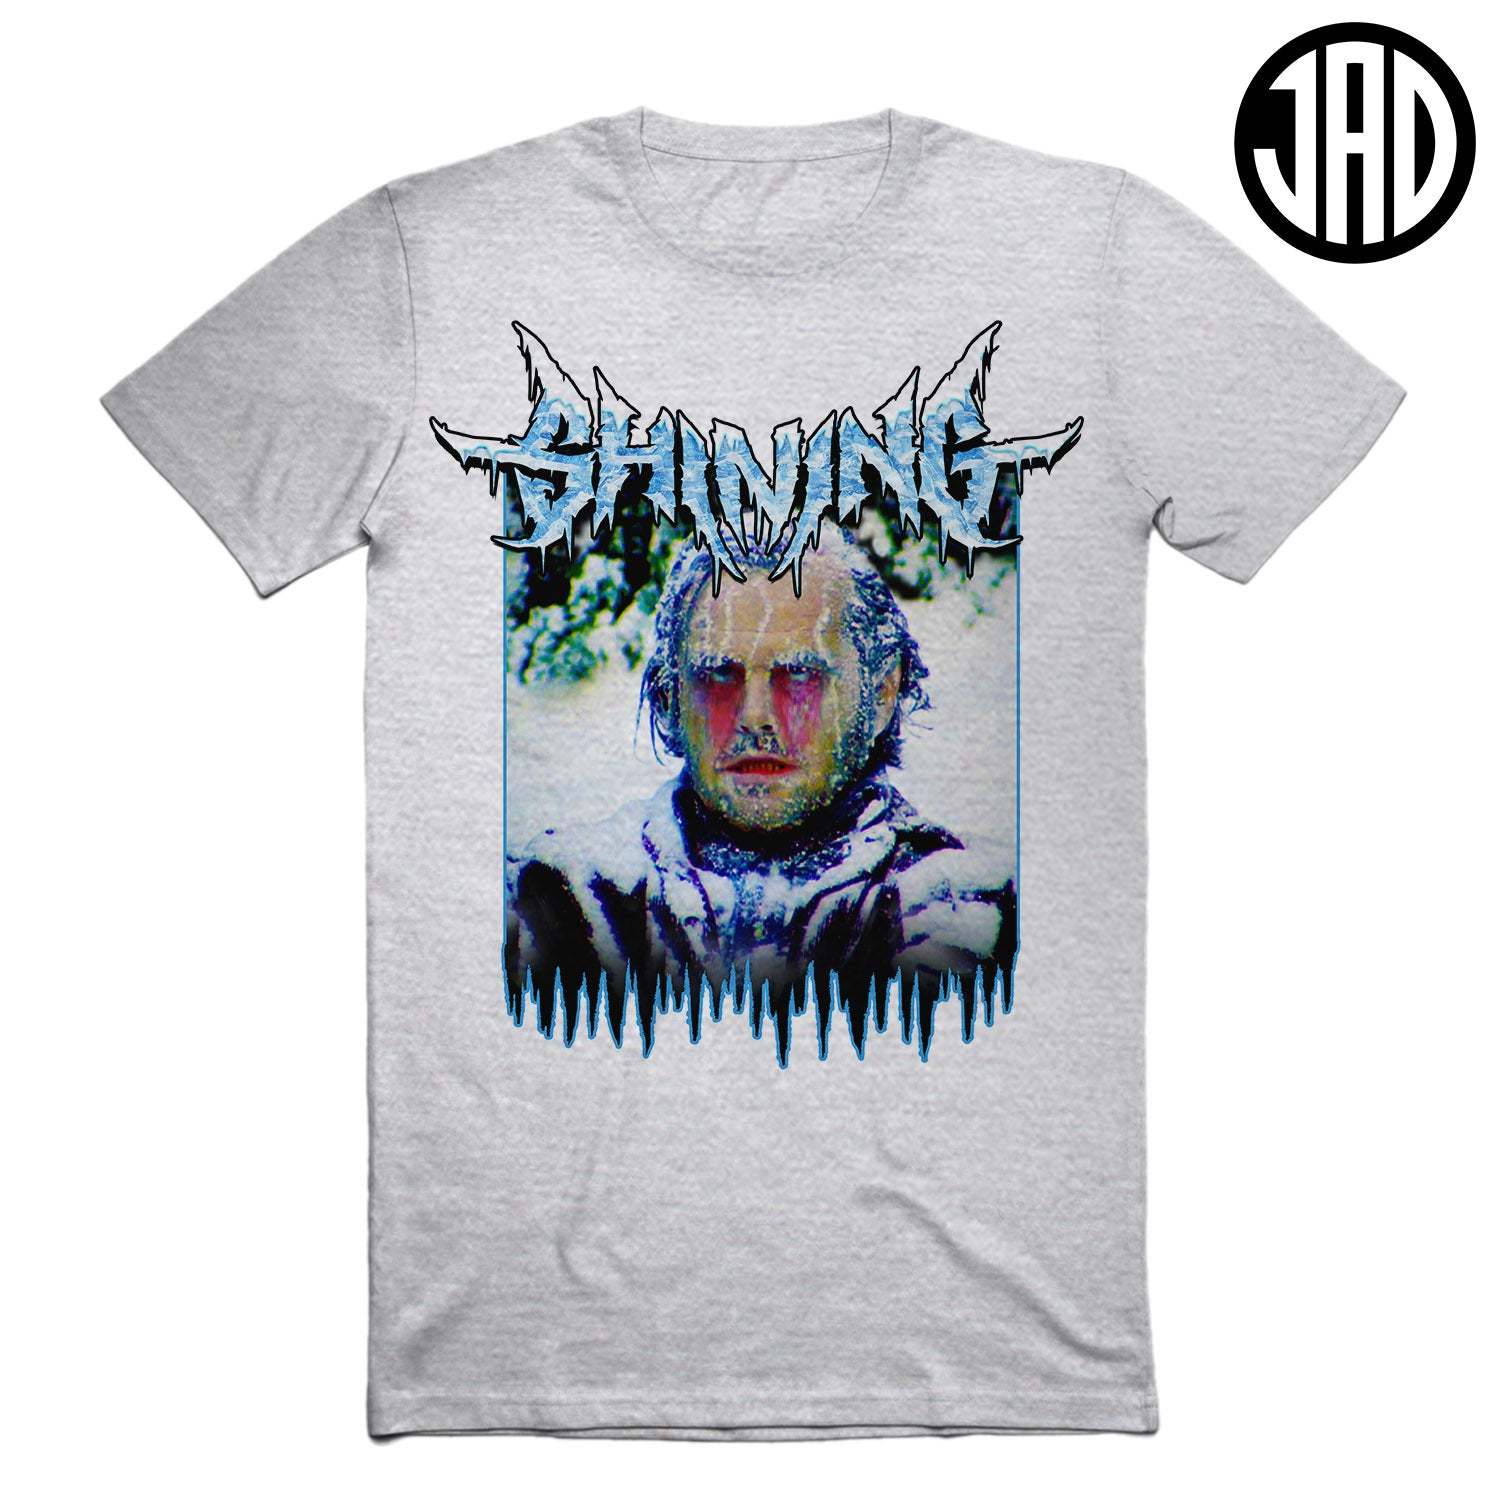 Shining Metal - Men's (Unisex) Tee